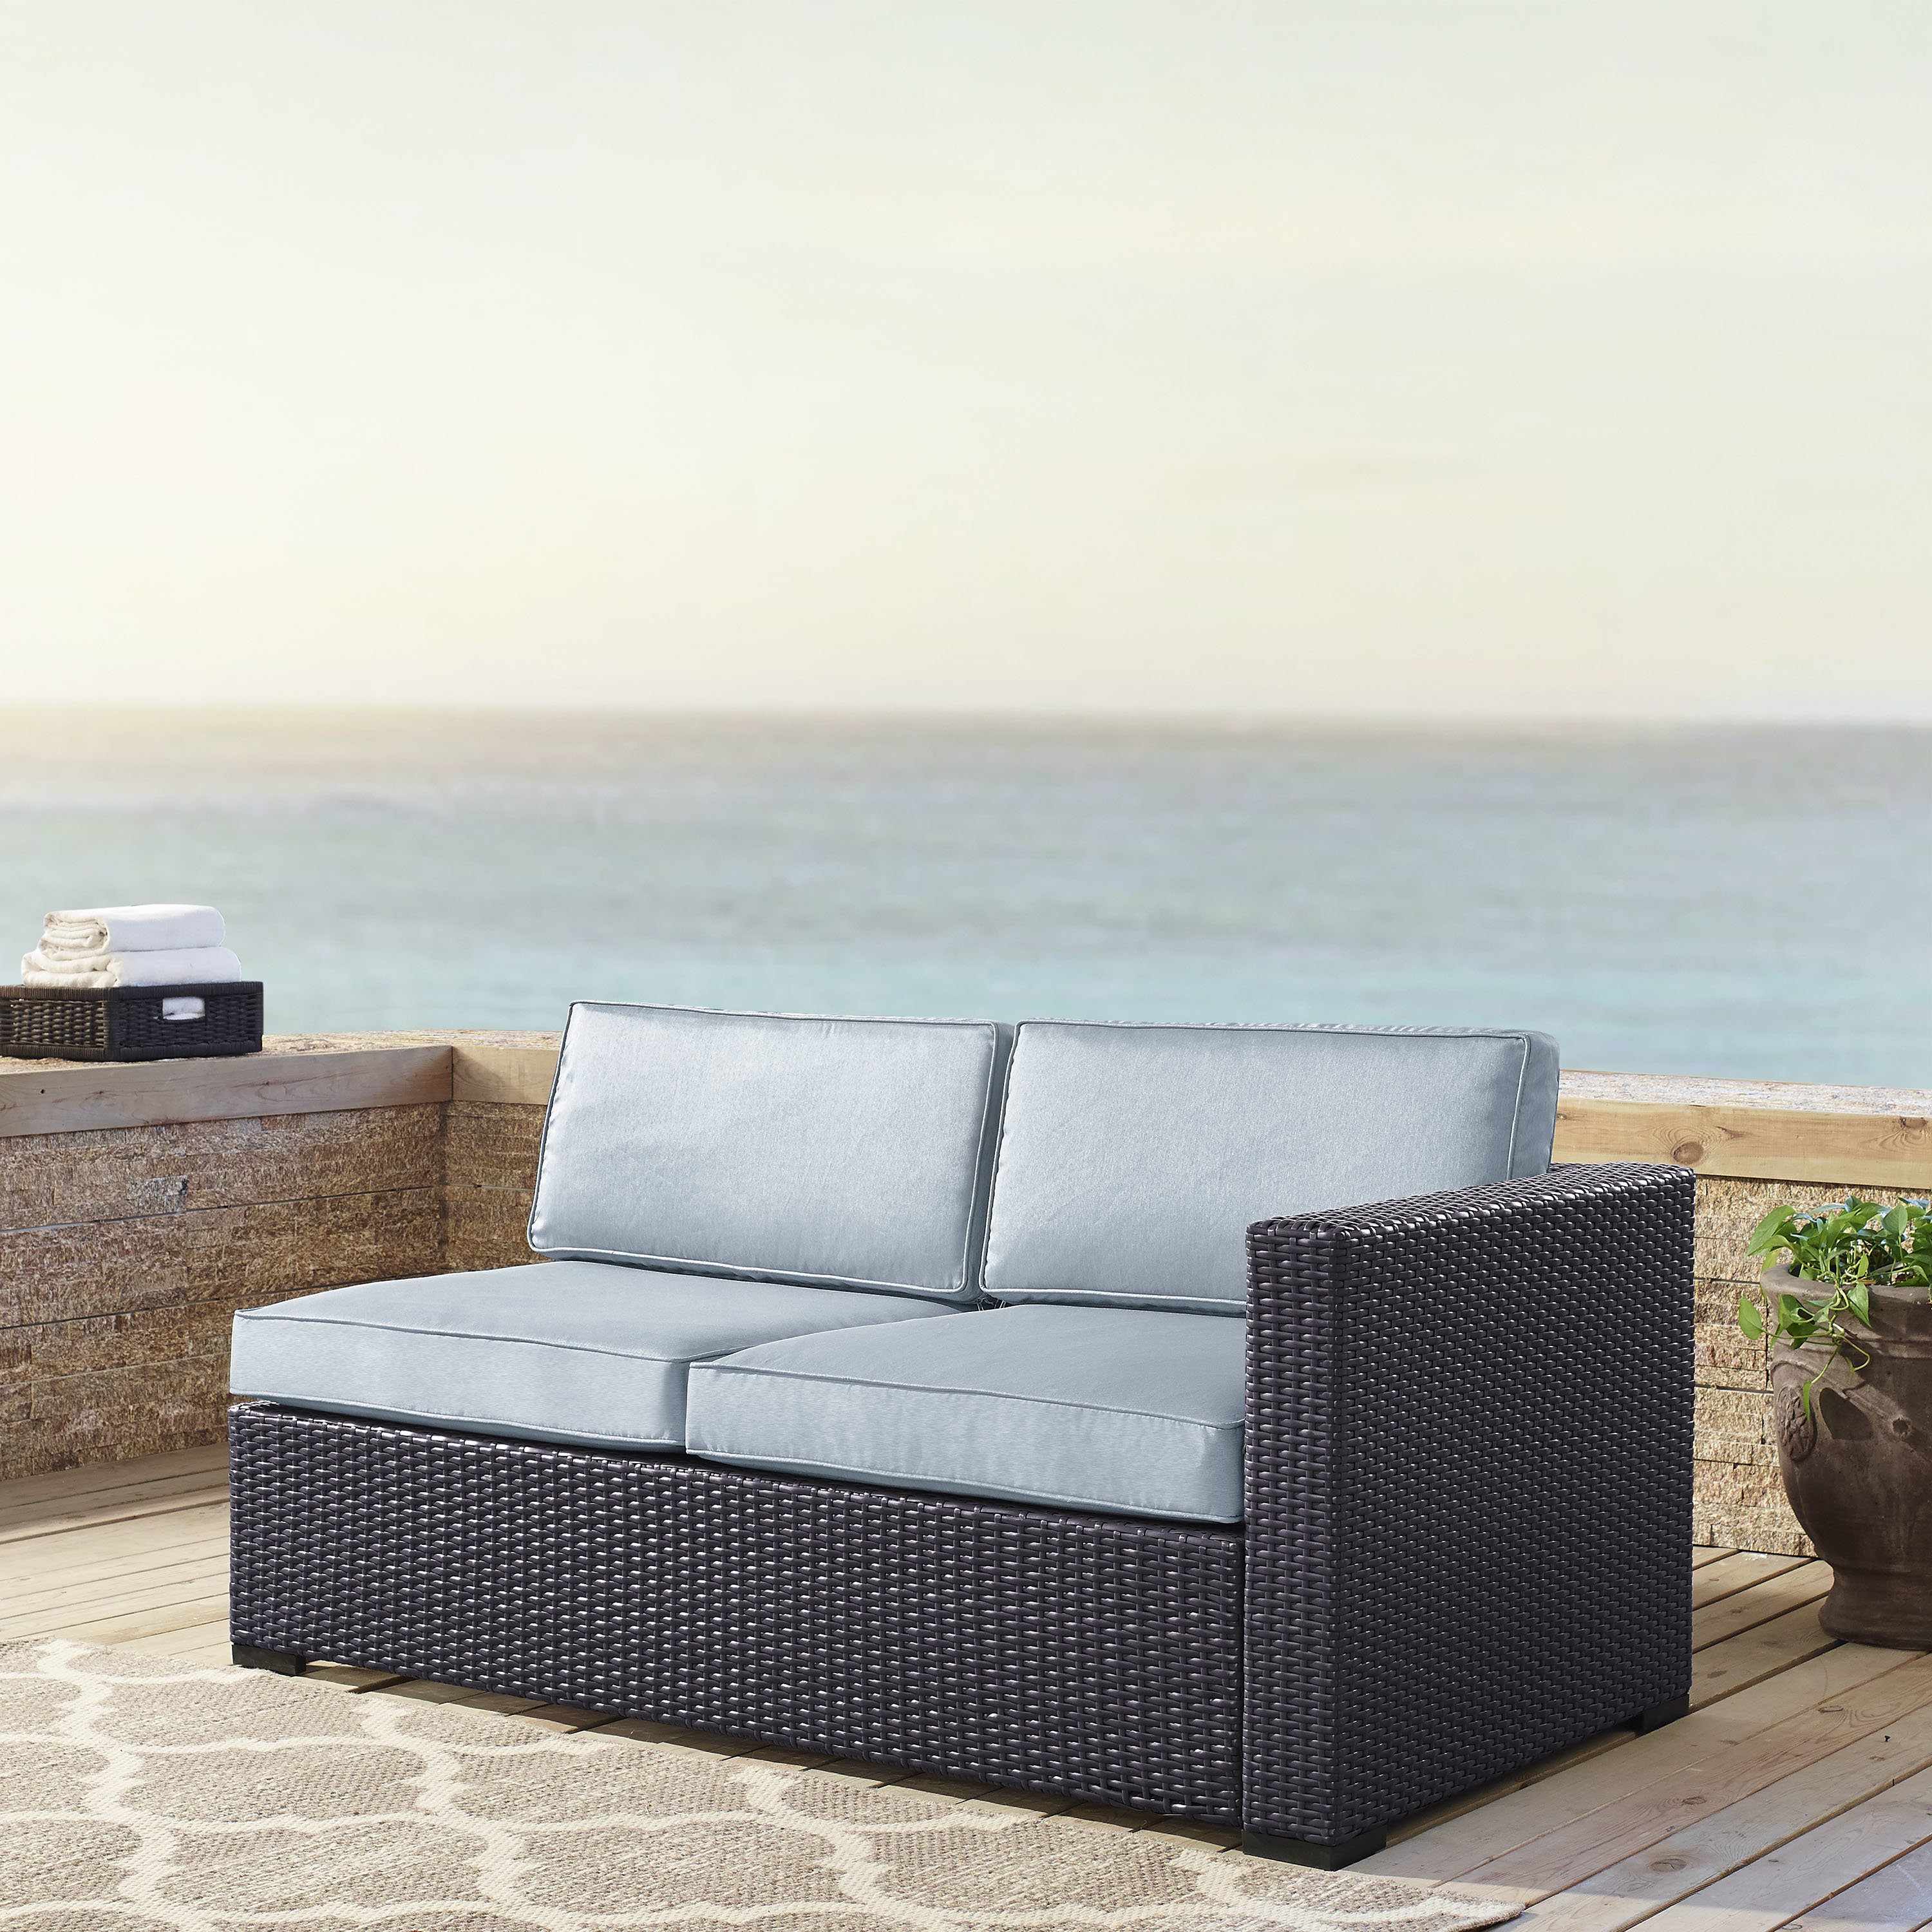 Most Up To Date Seaton Loveseat With Cushions For Mendelson Loveseats With Cushion (View 15 of 20)